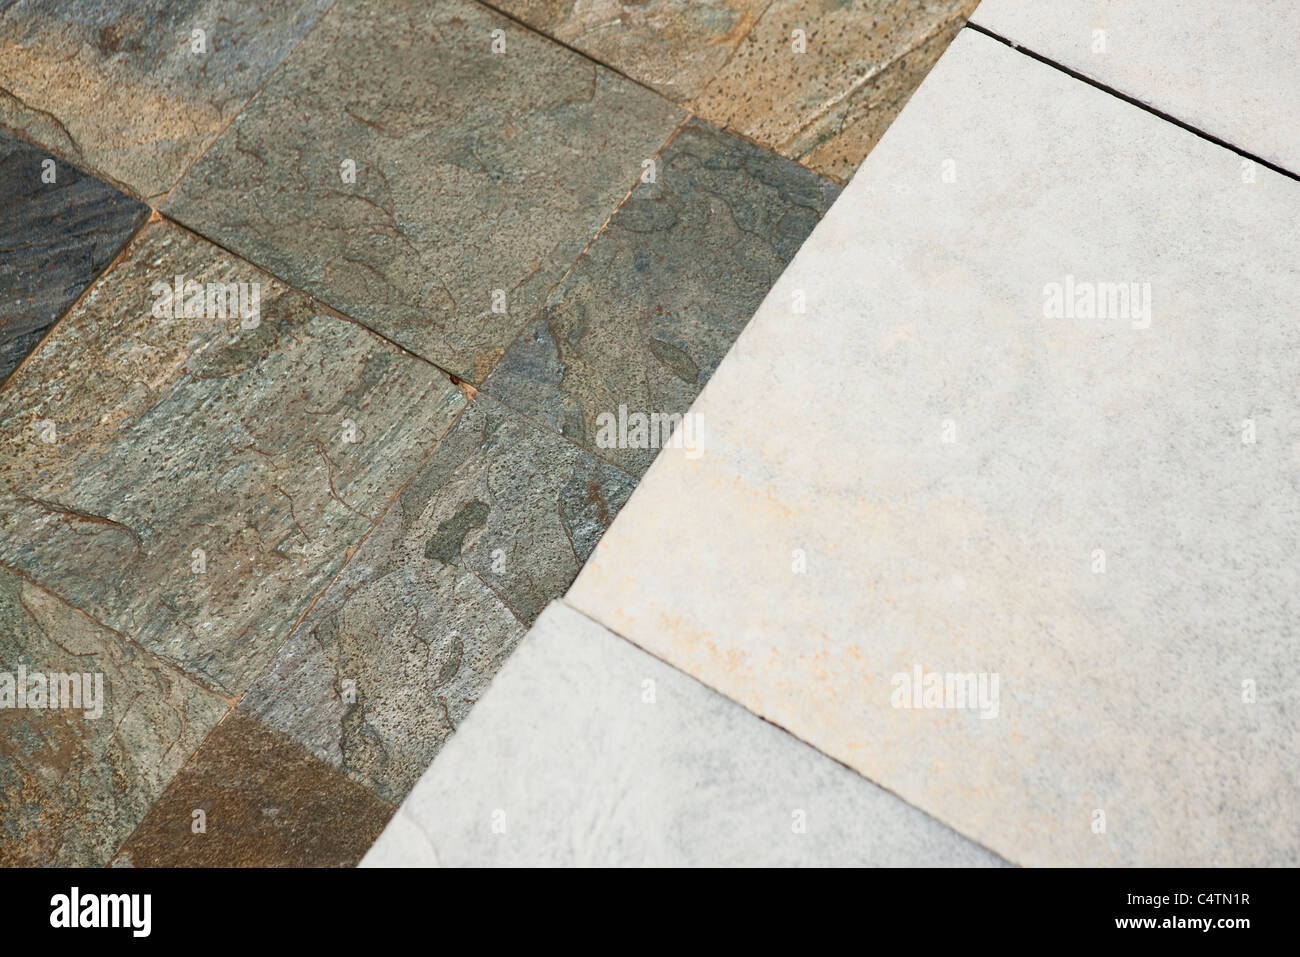 Tile and stone flooring - Stock Image